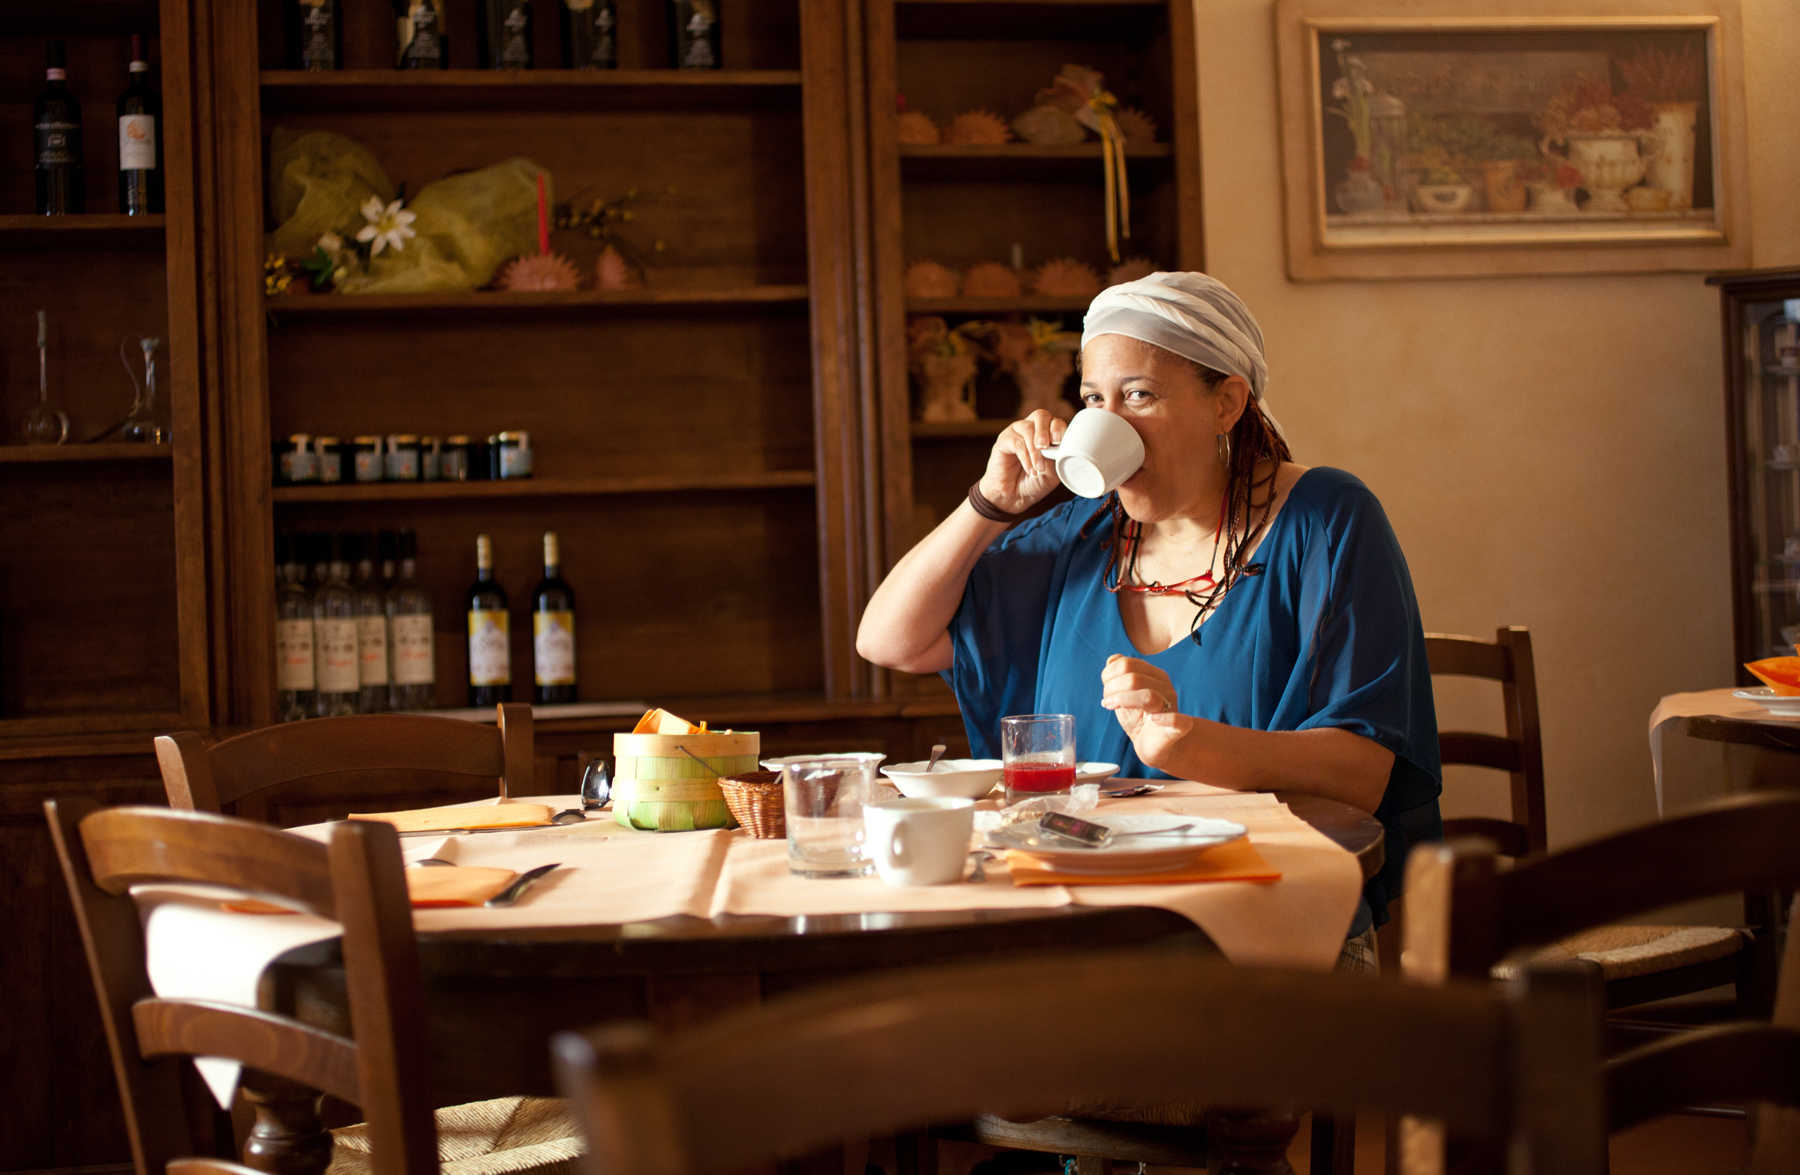 Woman Eating Italian Breakfast